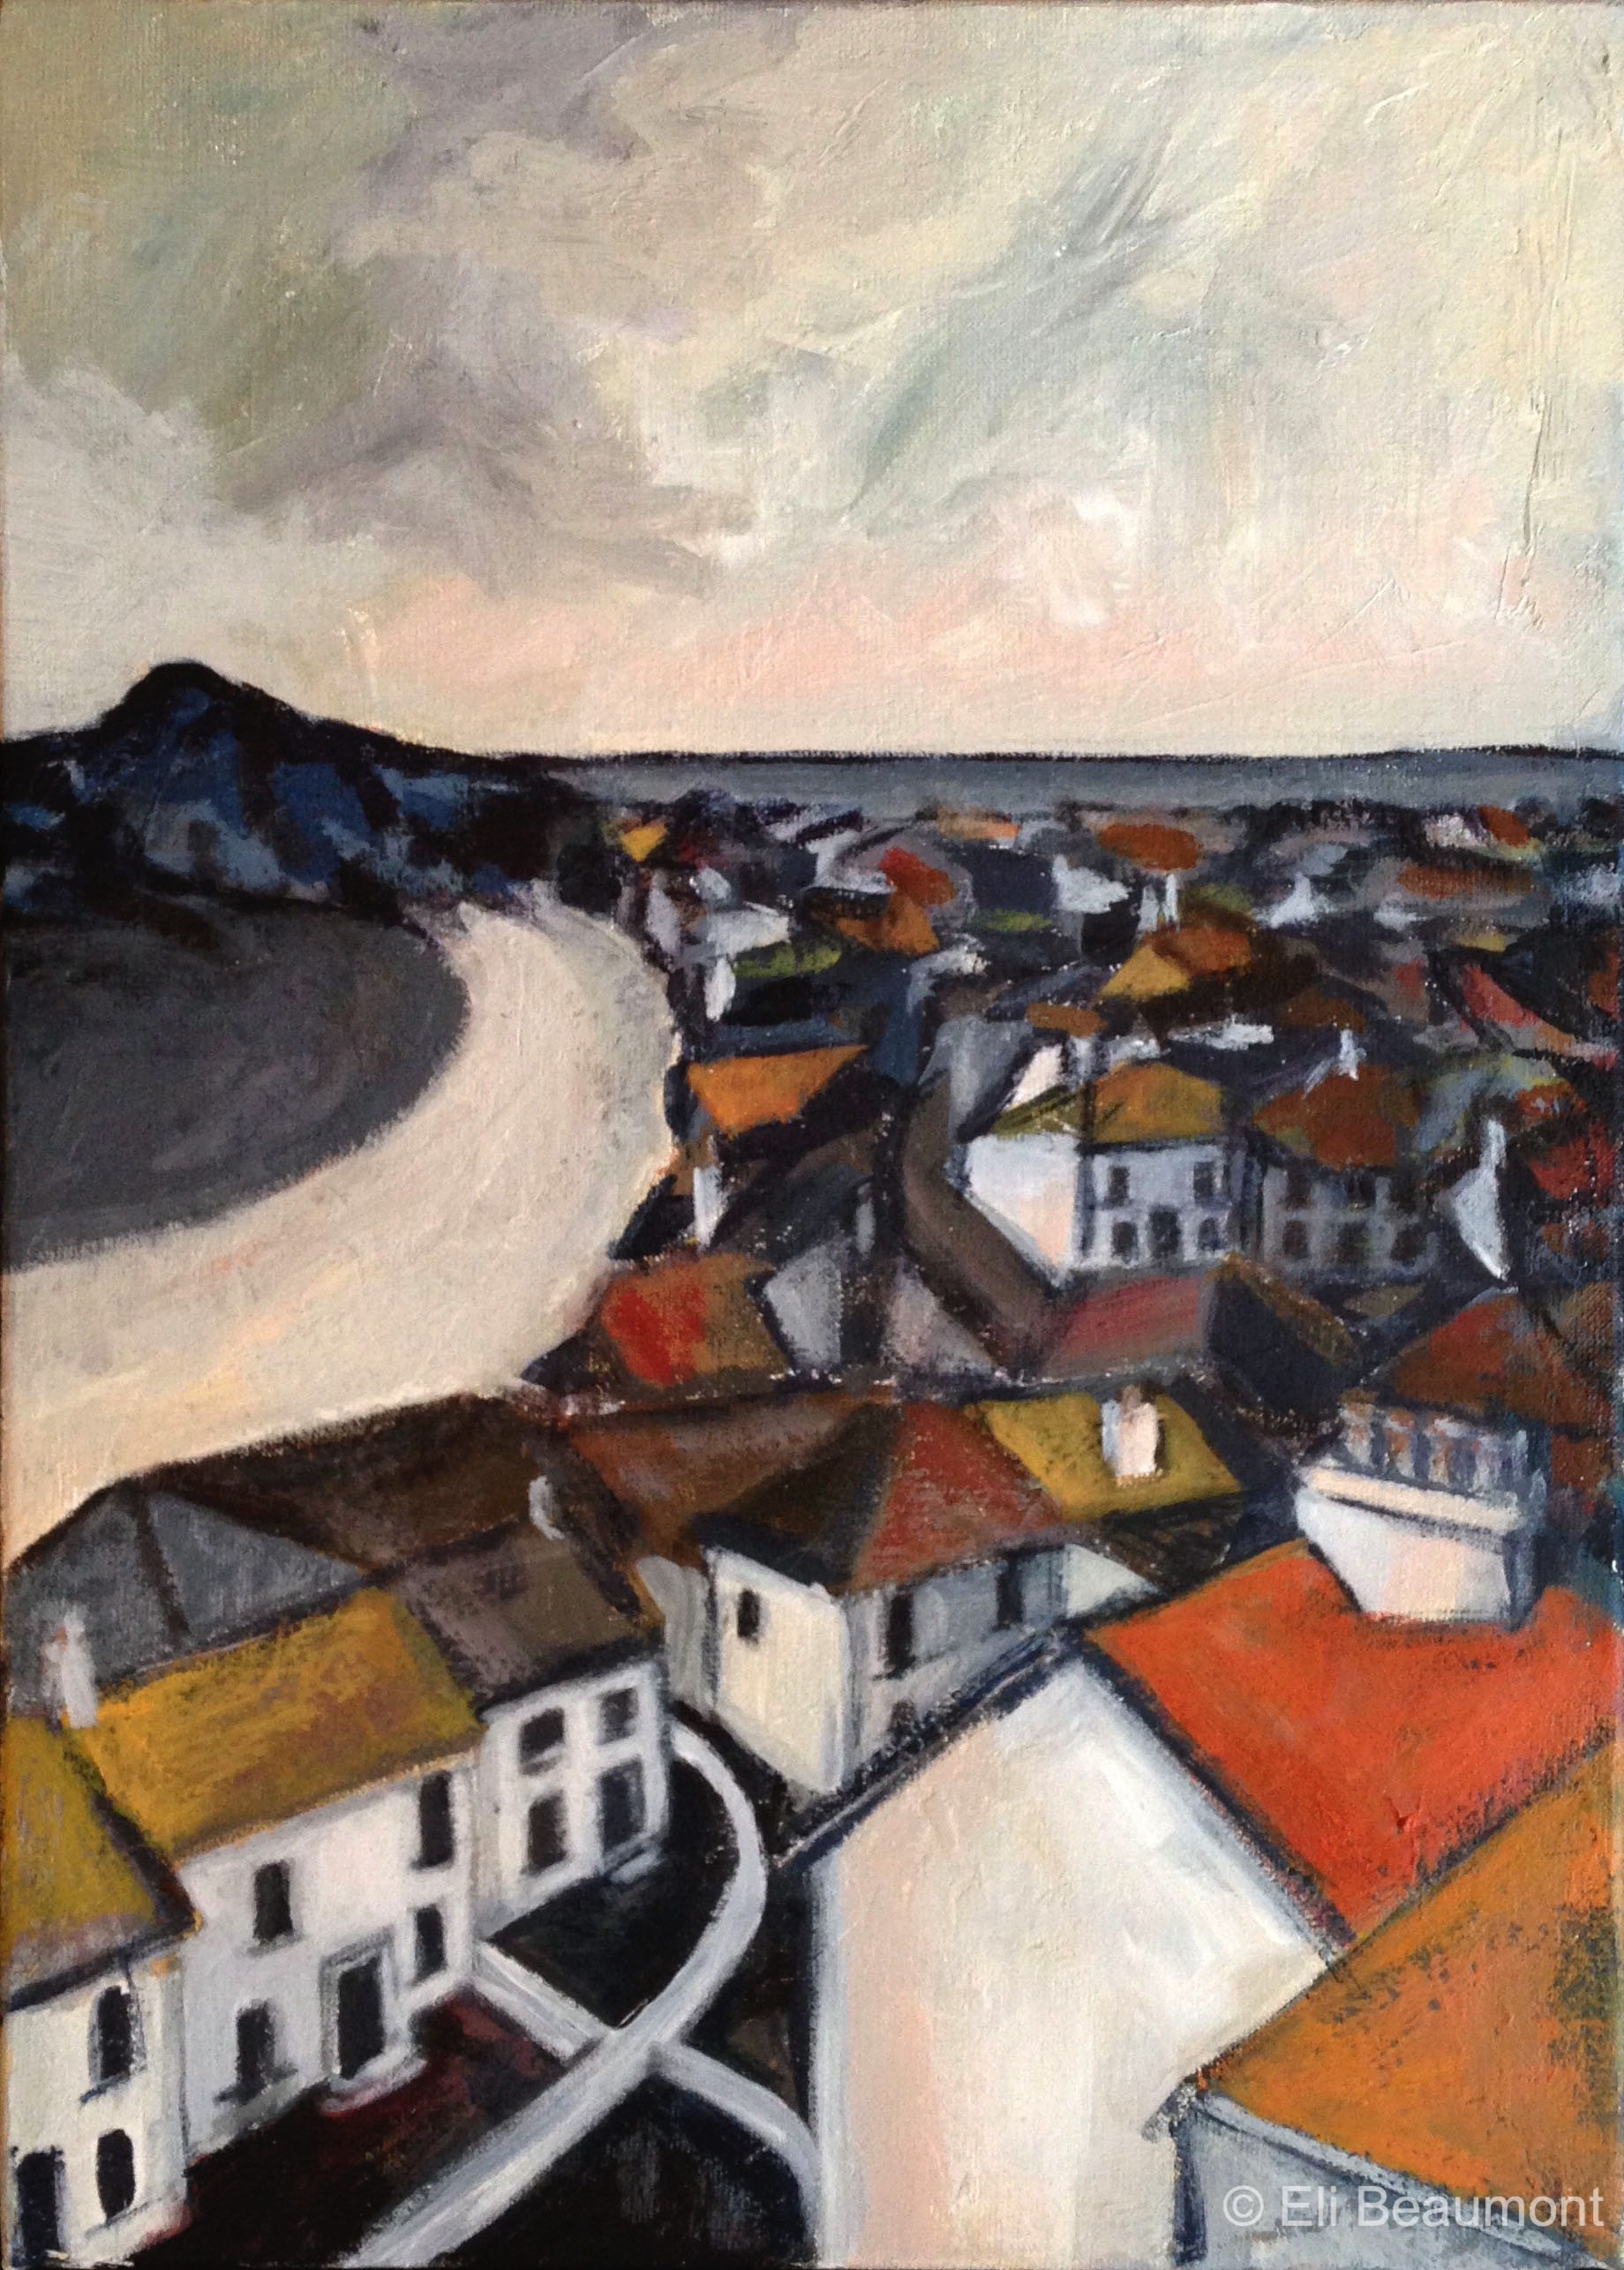 St Ives Roofs - acrylic on canvas